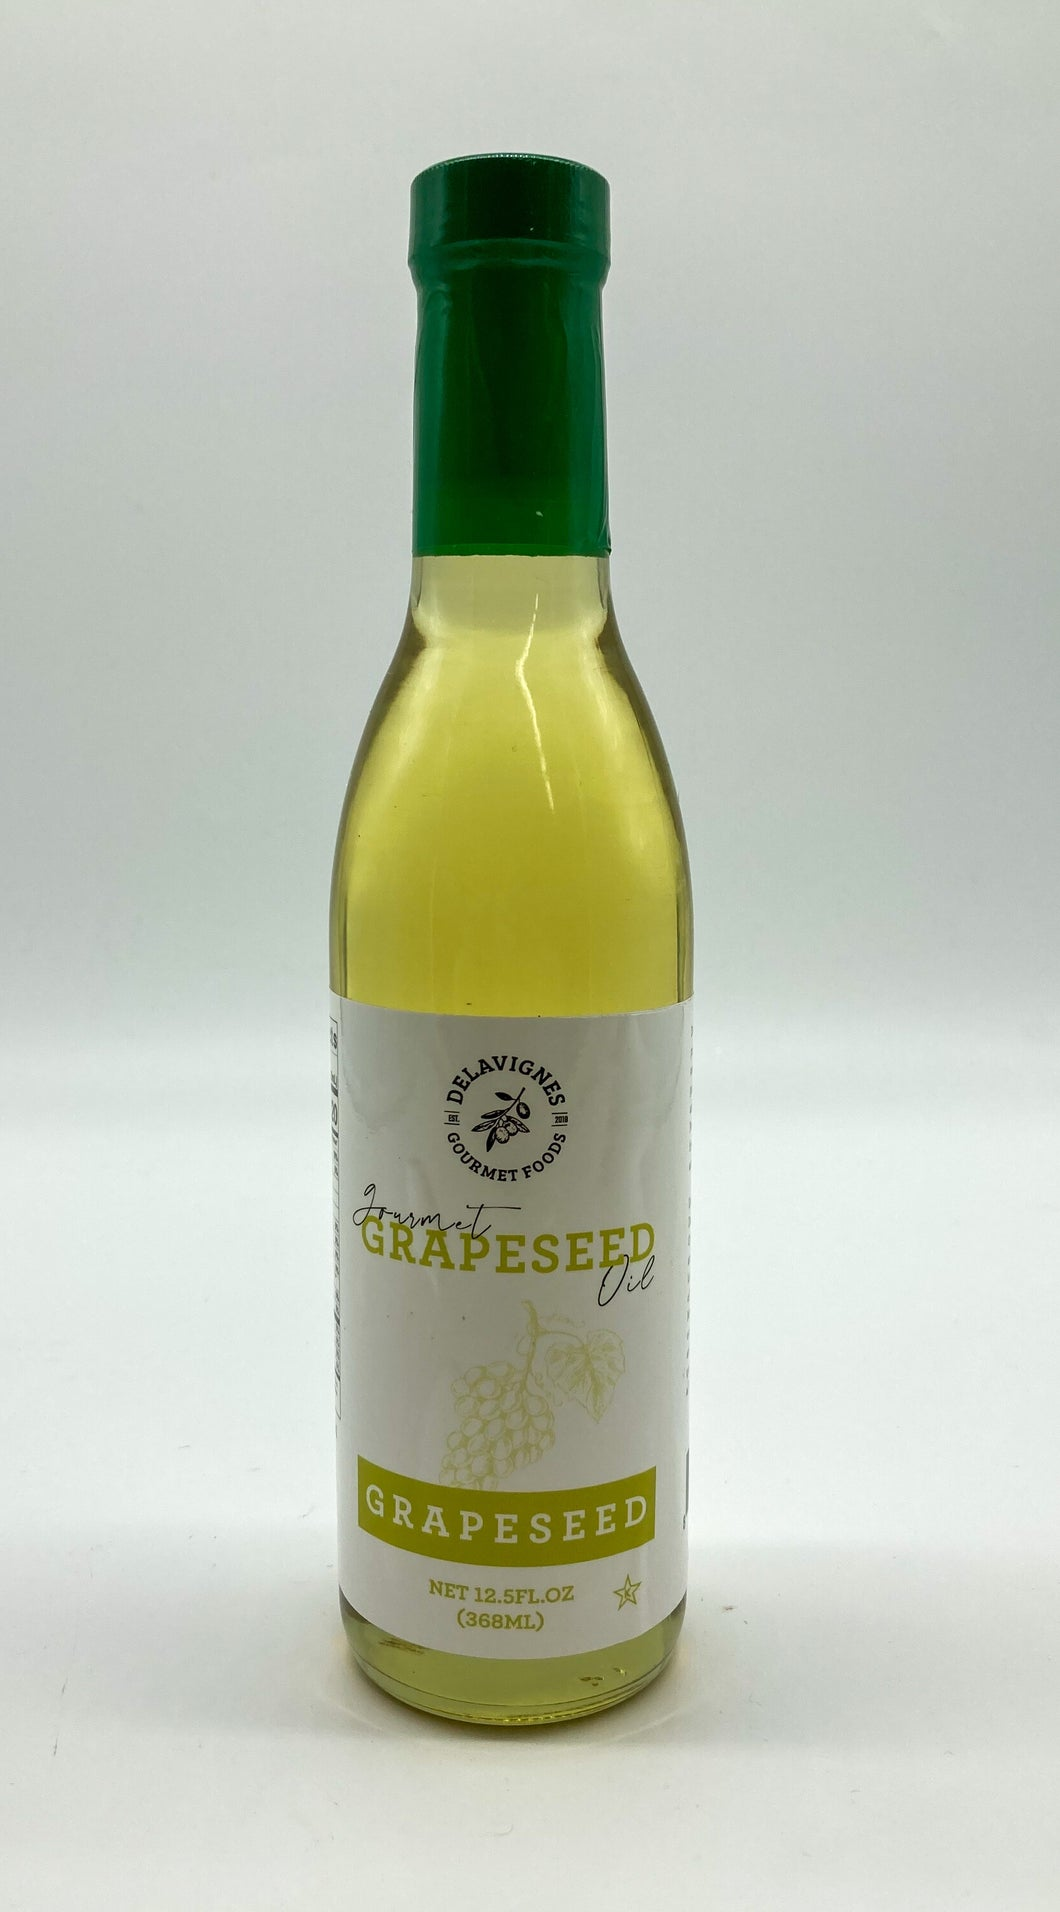 Delavignes Grapeseed Oil 12.5oz